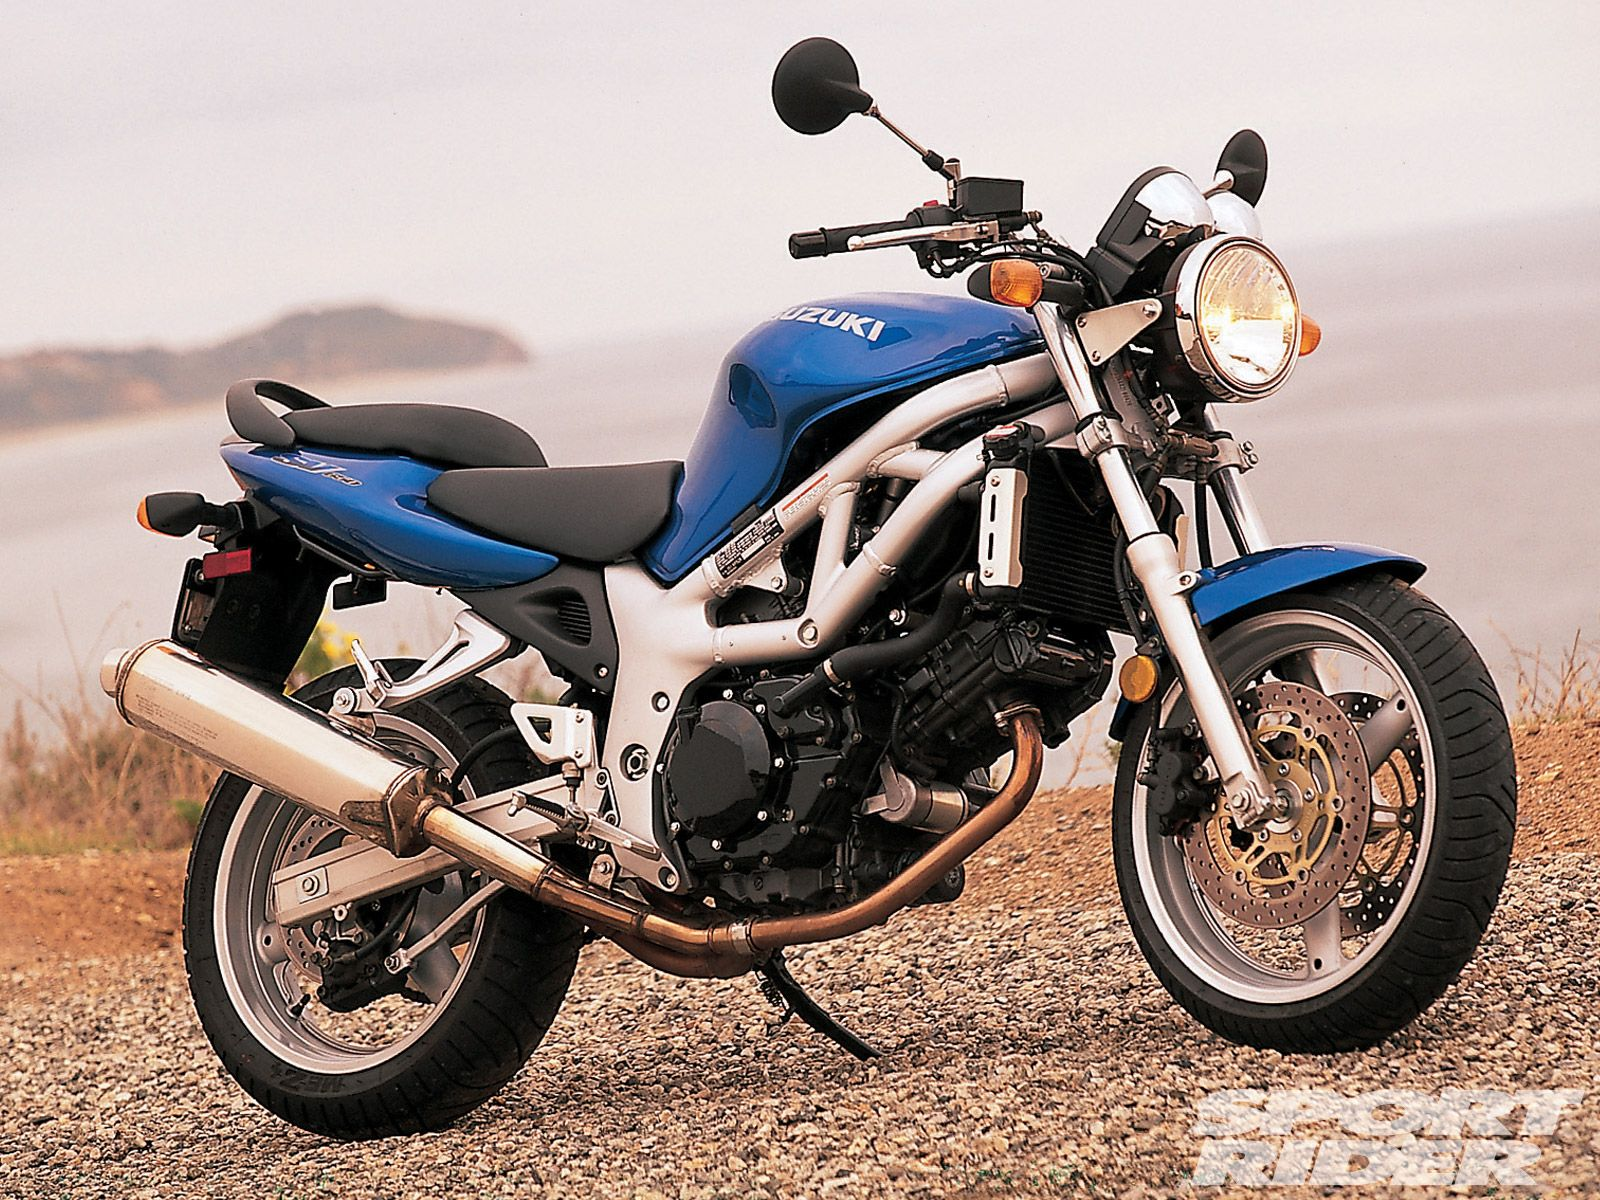 suzuki sv650 my last bike docile or sporty could be both would